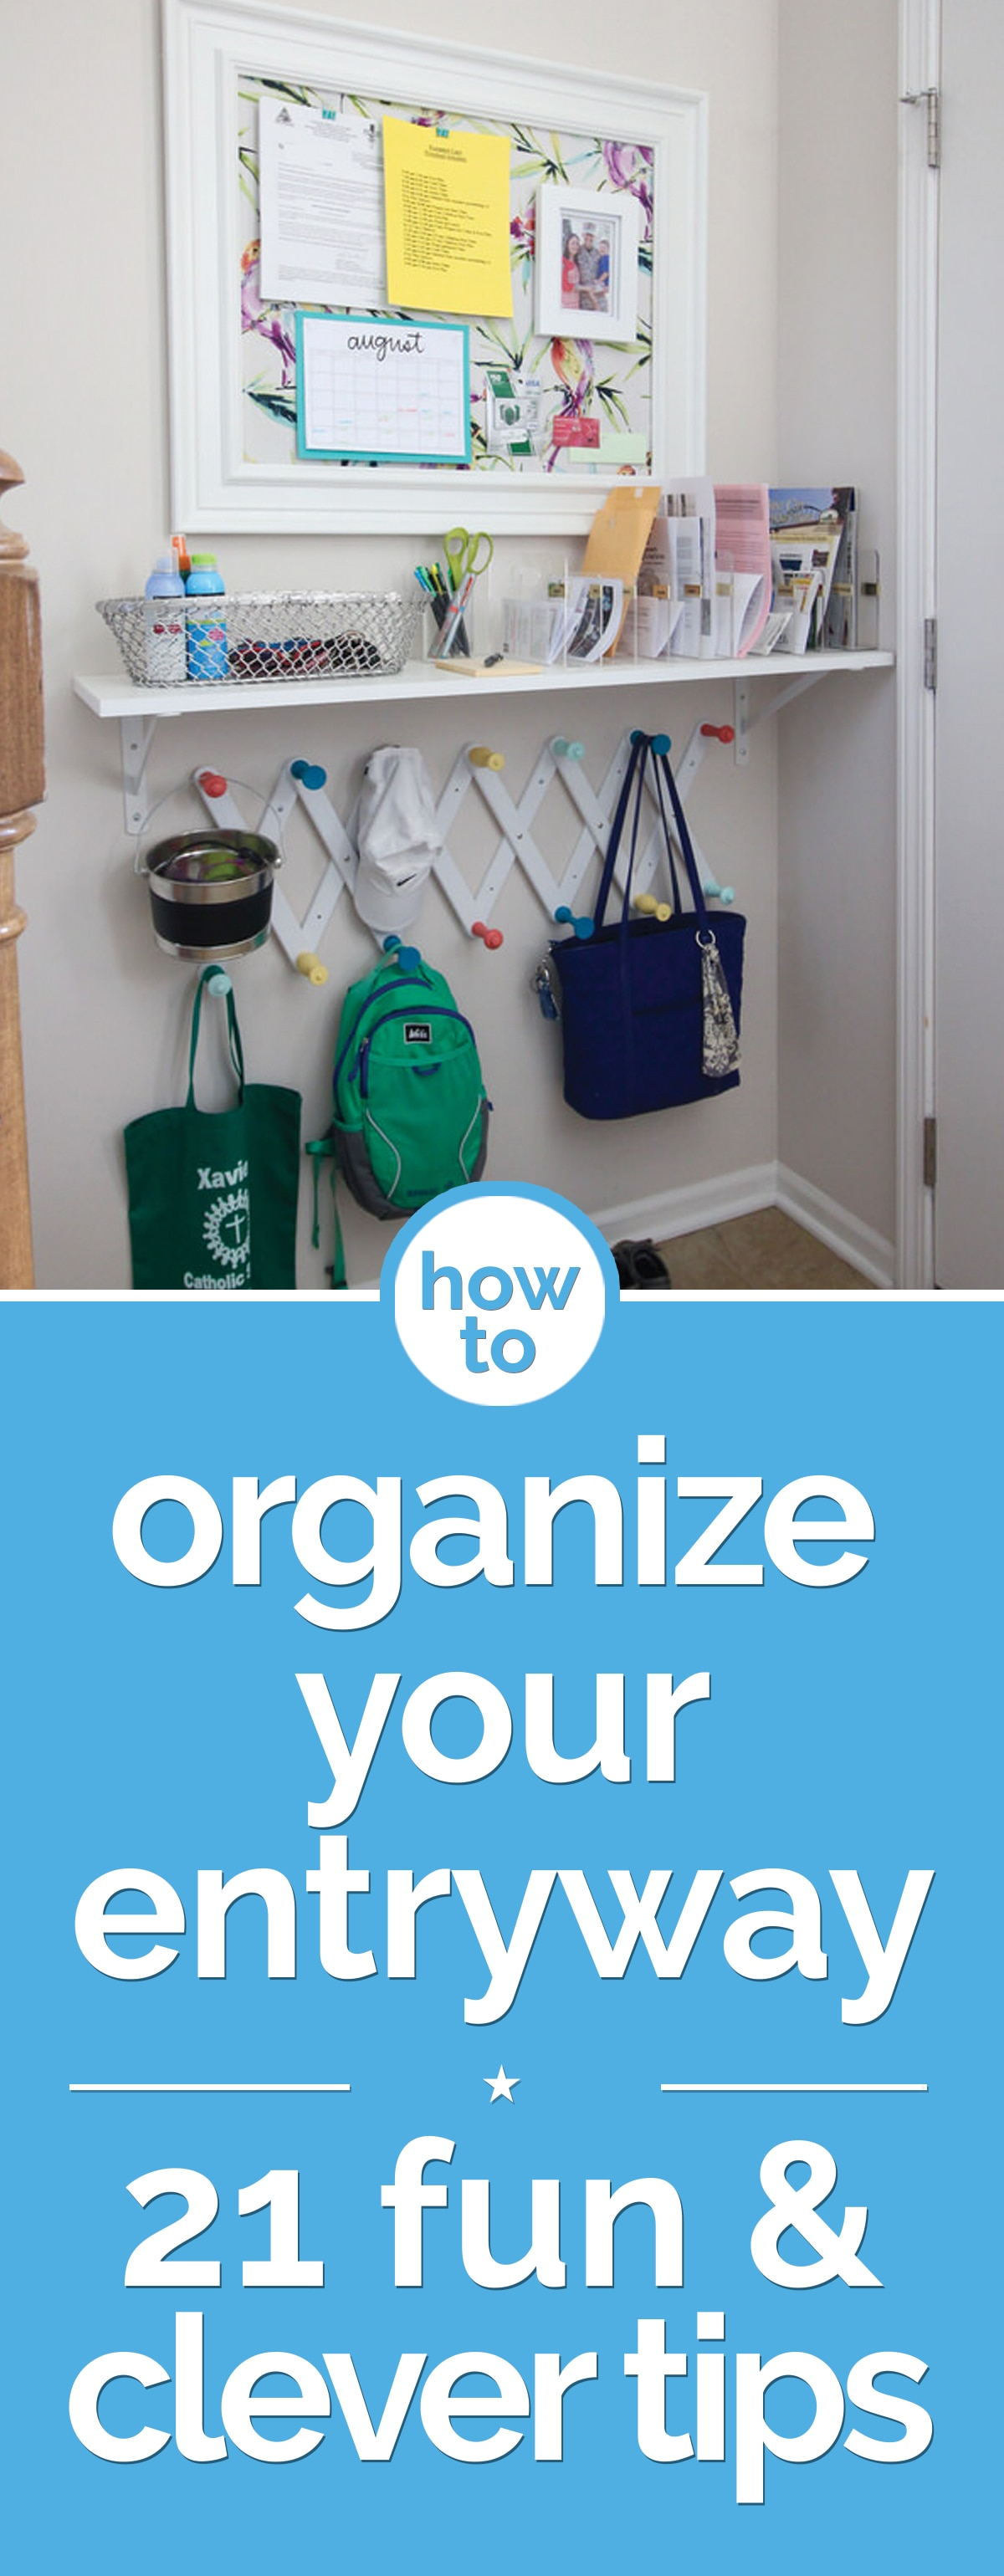 Lovely How To Organize Your Entryway: 21 Fun U0026 Clever Tips | Thegoodstuff Nice Ideas